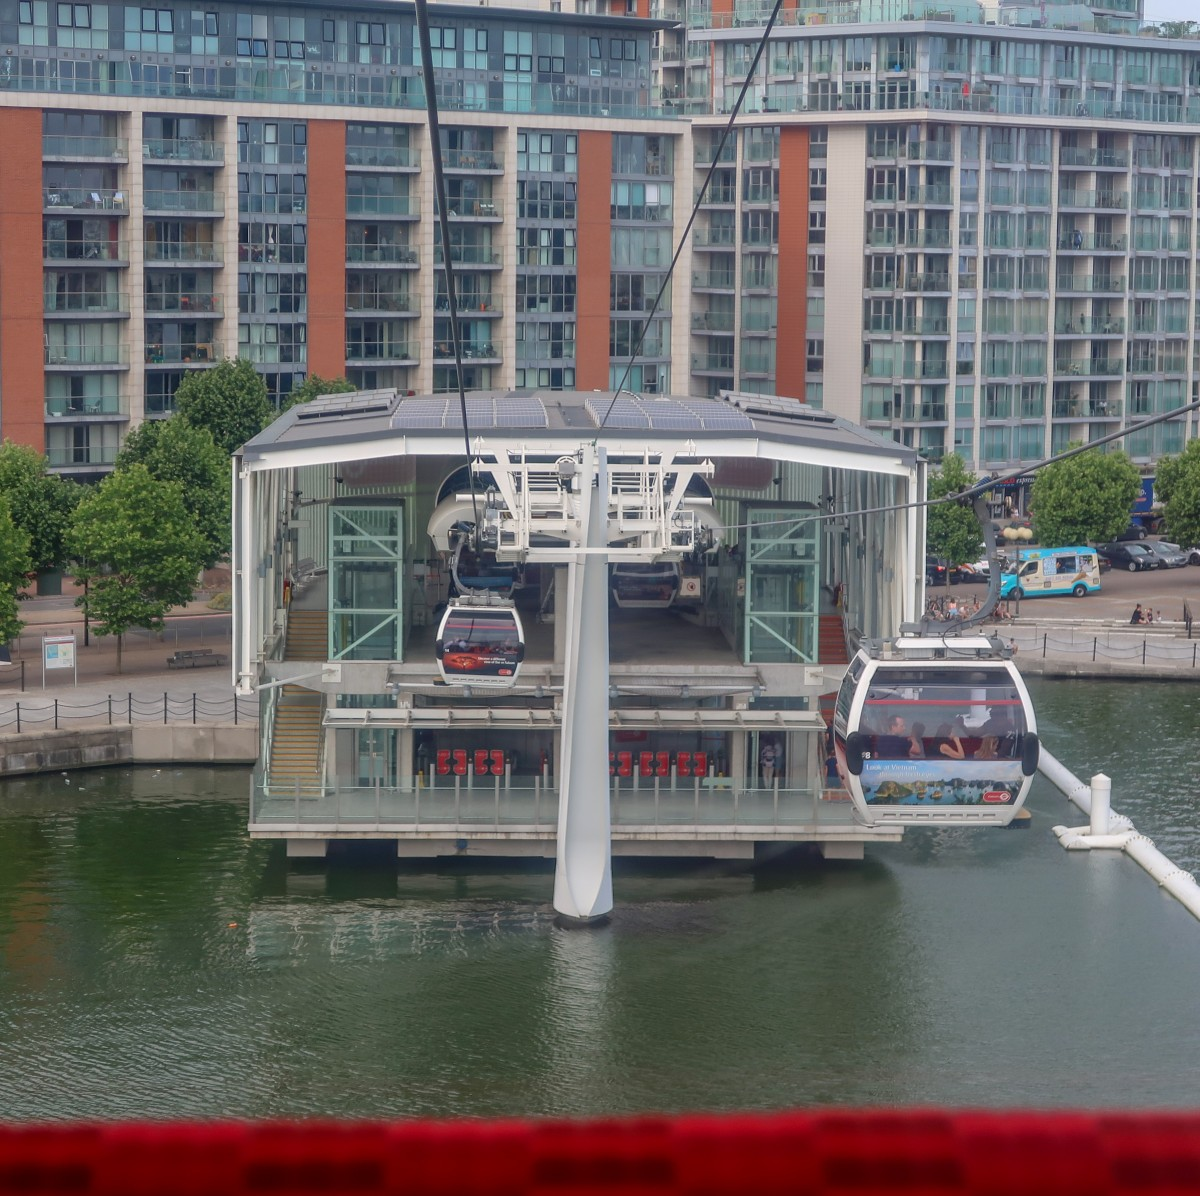 Finishing our journey on the Emirates airline cable car